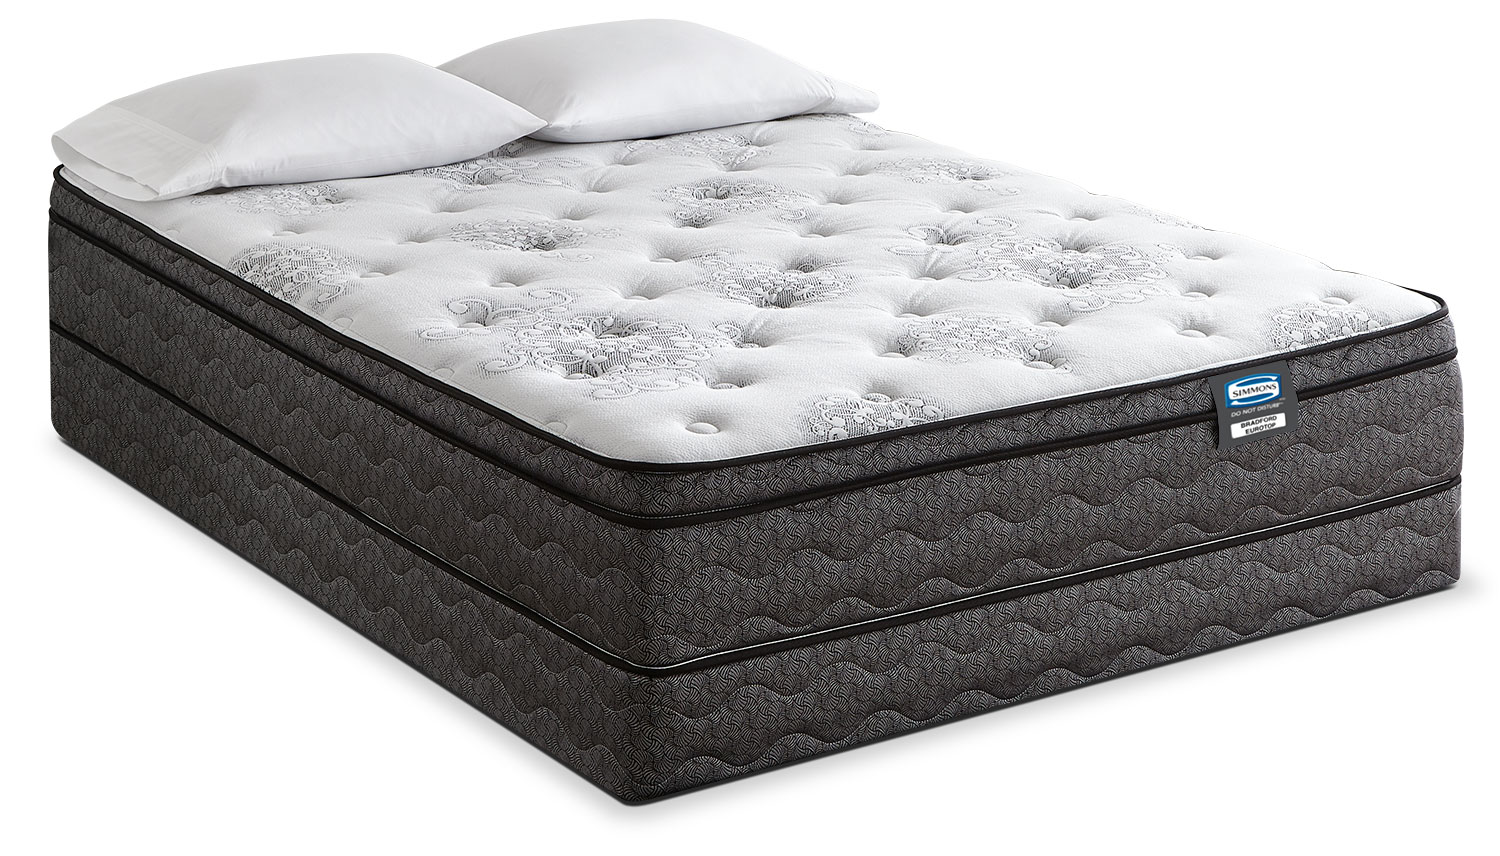 Simmons Do Not Disturb Bradford Euro Top Firm King Mattress Set The Brick